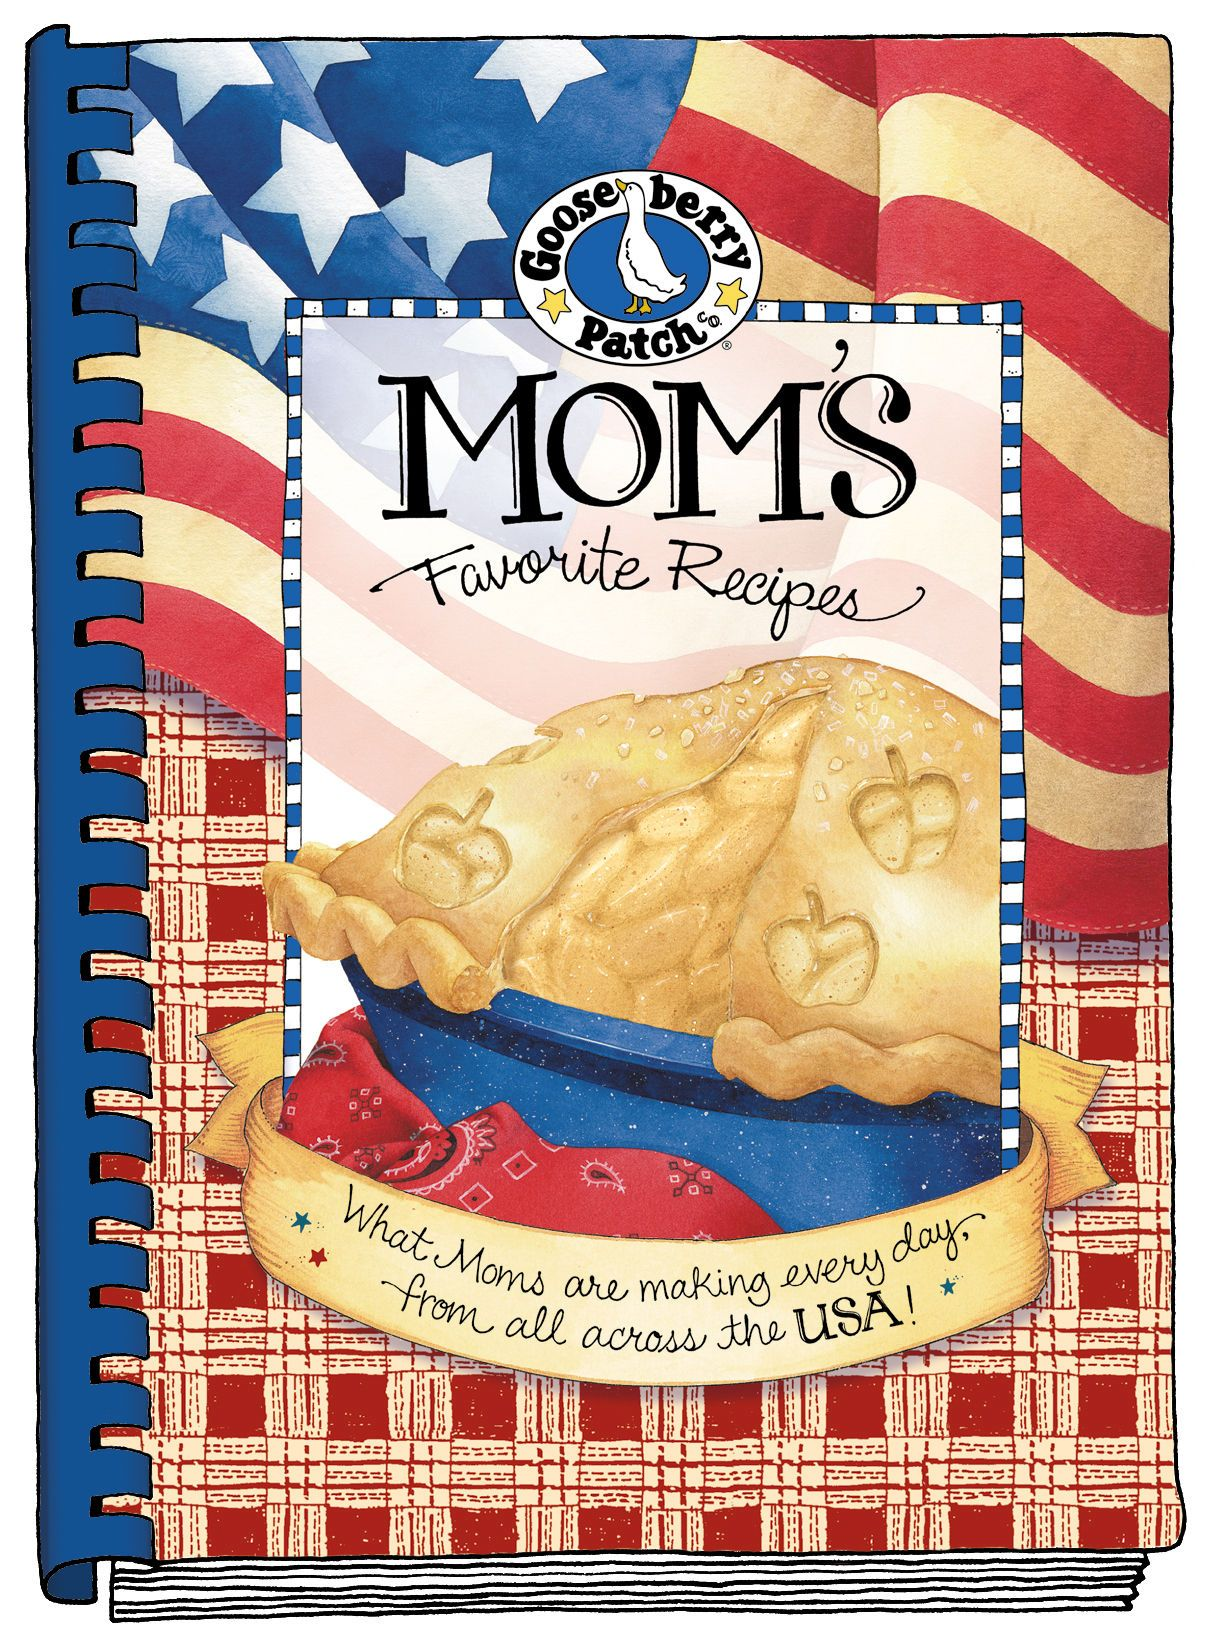 Mom's Favorite Recipes Cookbook is filled with the best recipes Moms are making every day from all across the USA! Also now available as a convenient eBook!